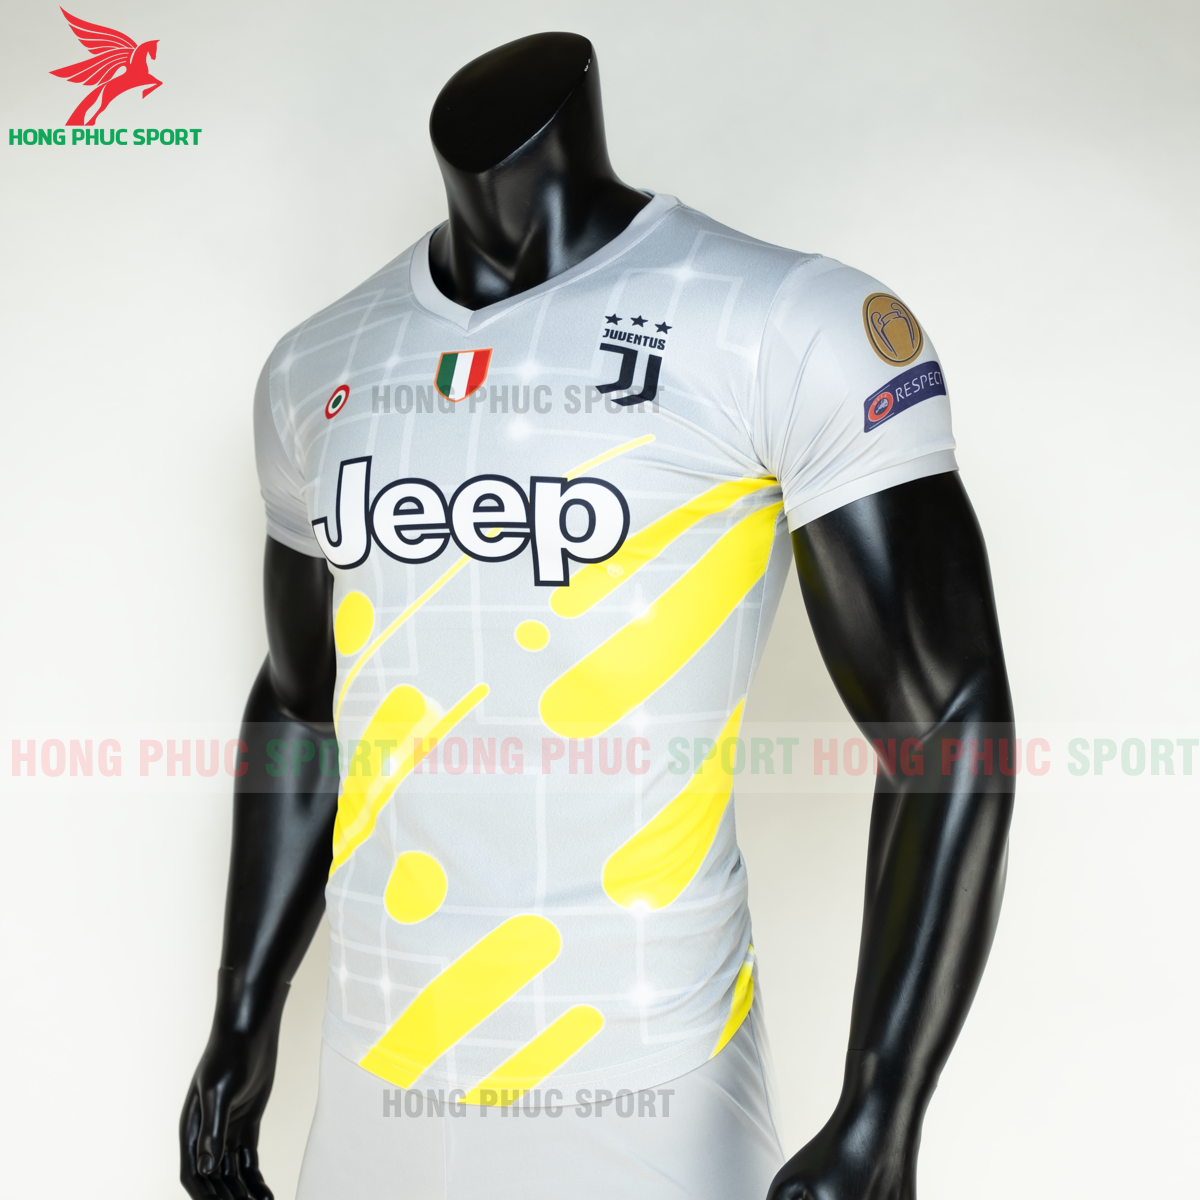 https://cdn.hongphucsport.com/unsafe/s4.shopbay.vn/files/285/ao-da-bong-juventus-2020-2021-phien-ban-fan-3-5fe1a895e4f2a.png